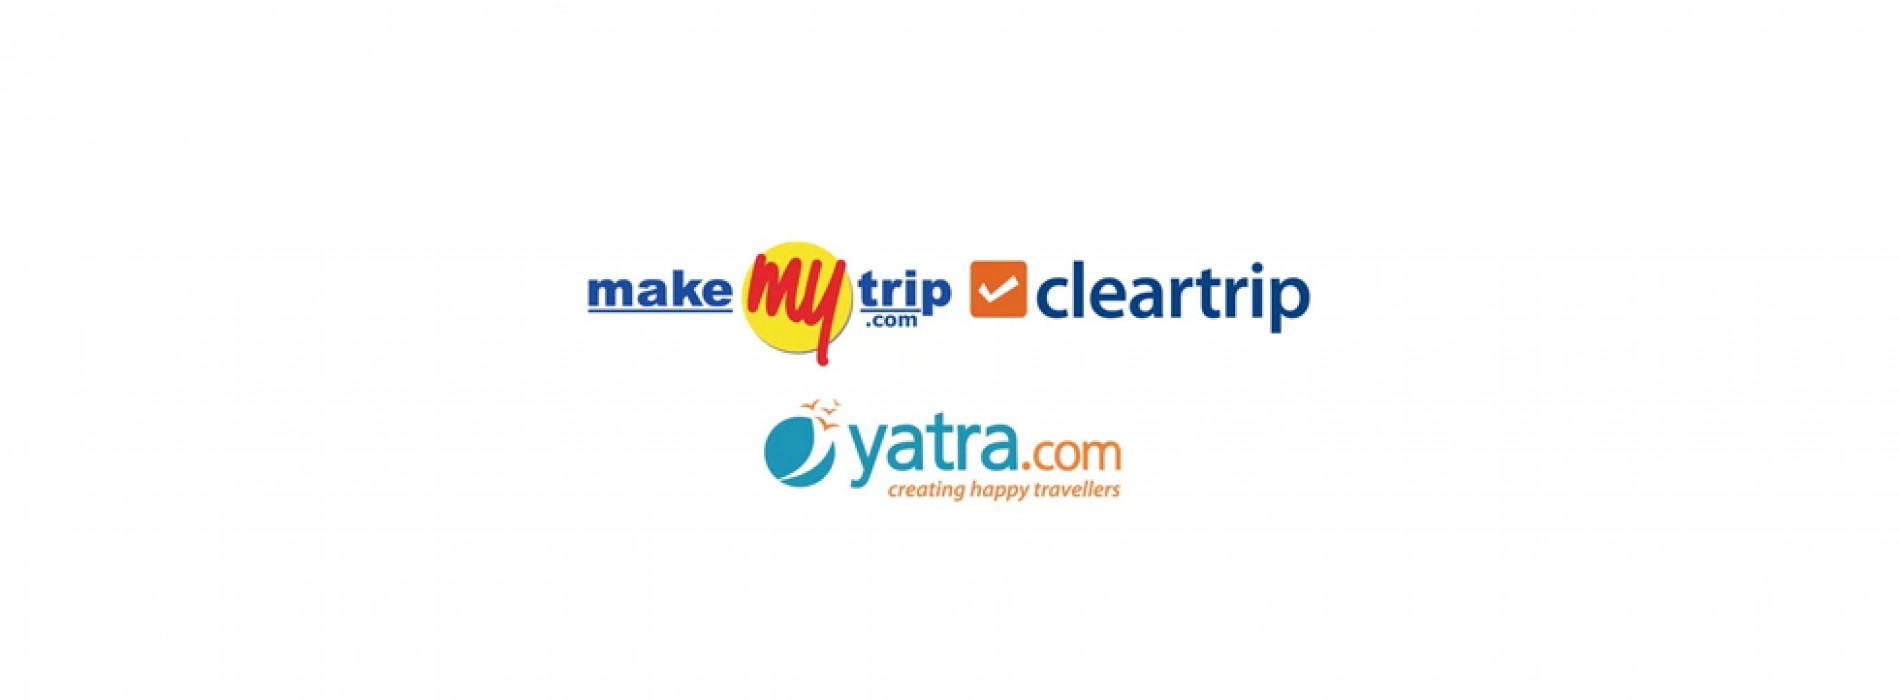 Online travel portals line up freebies to woo customers